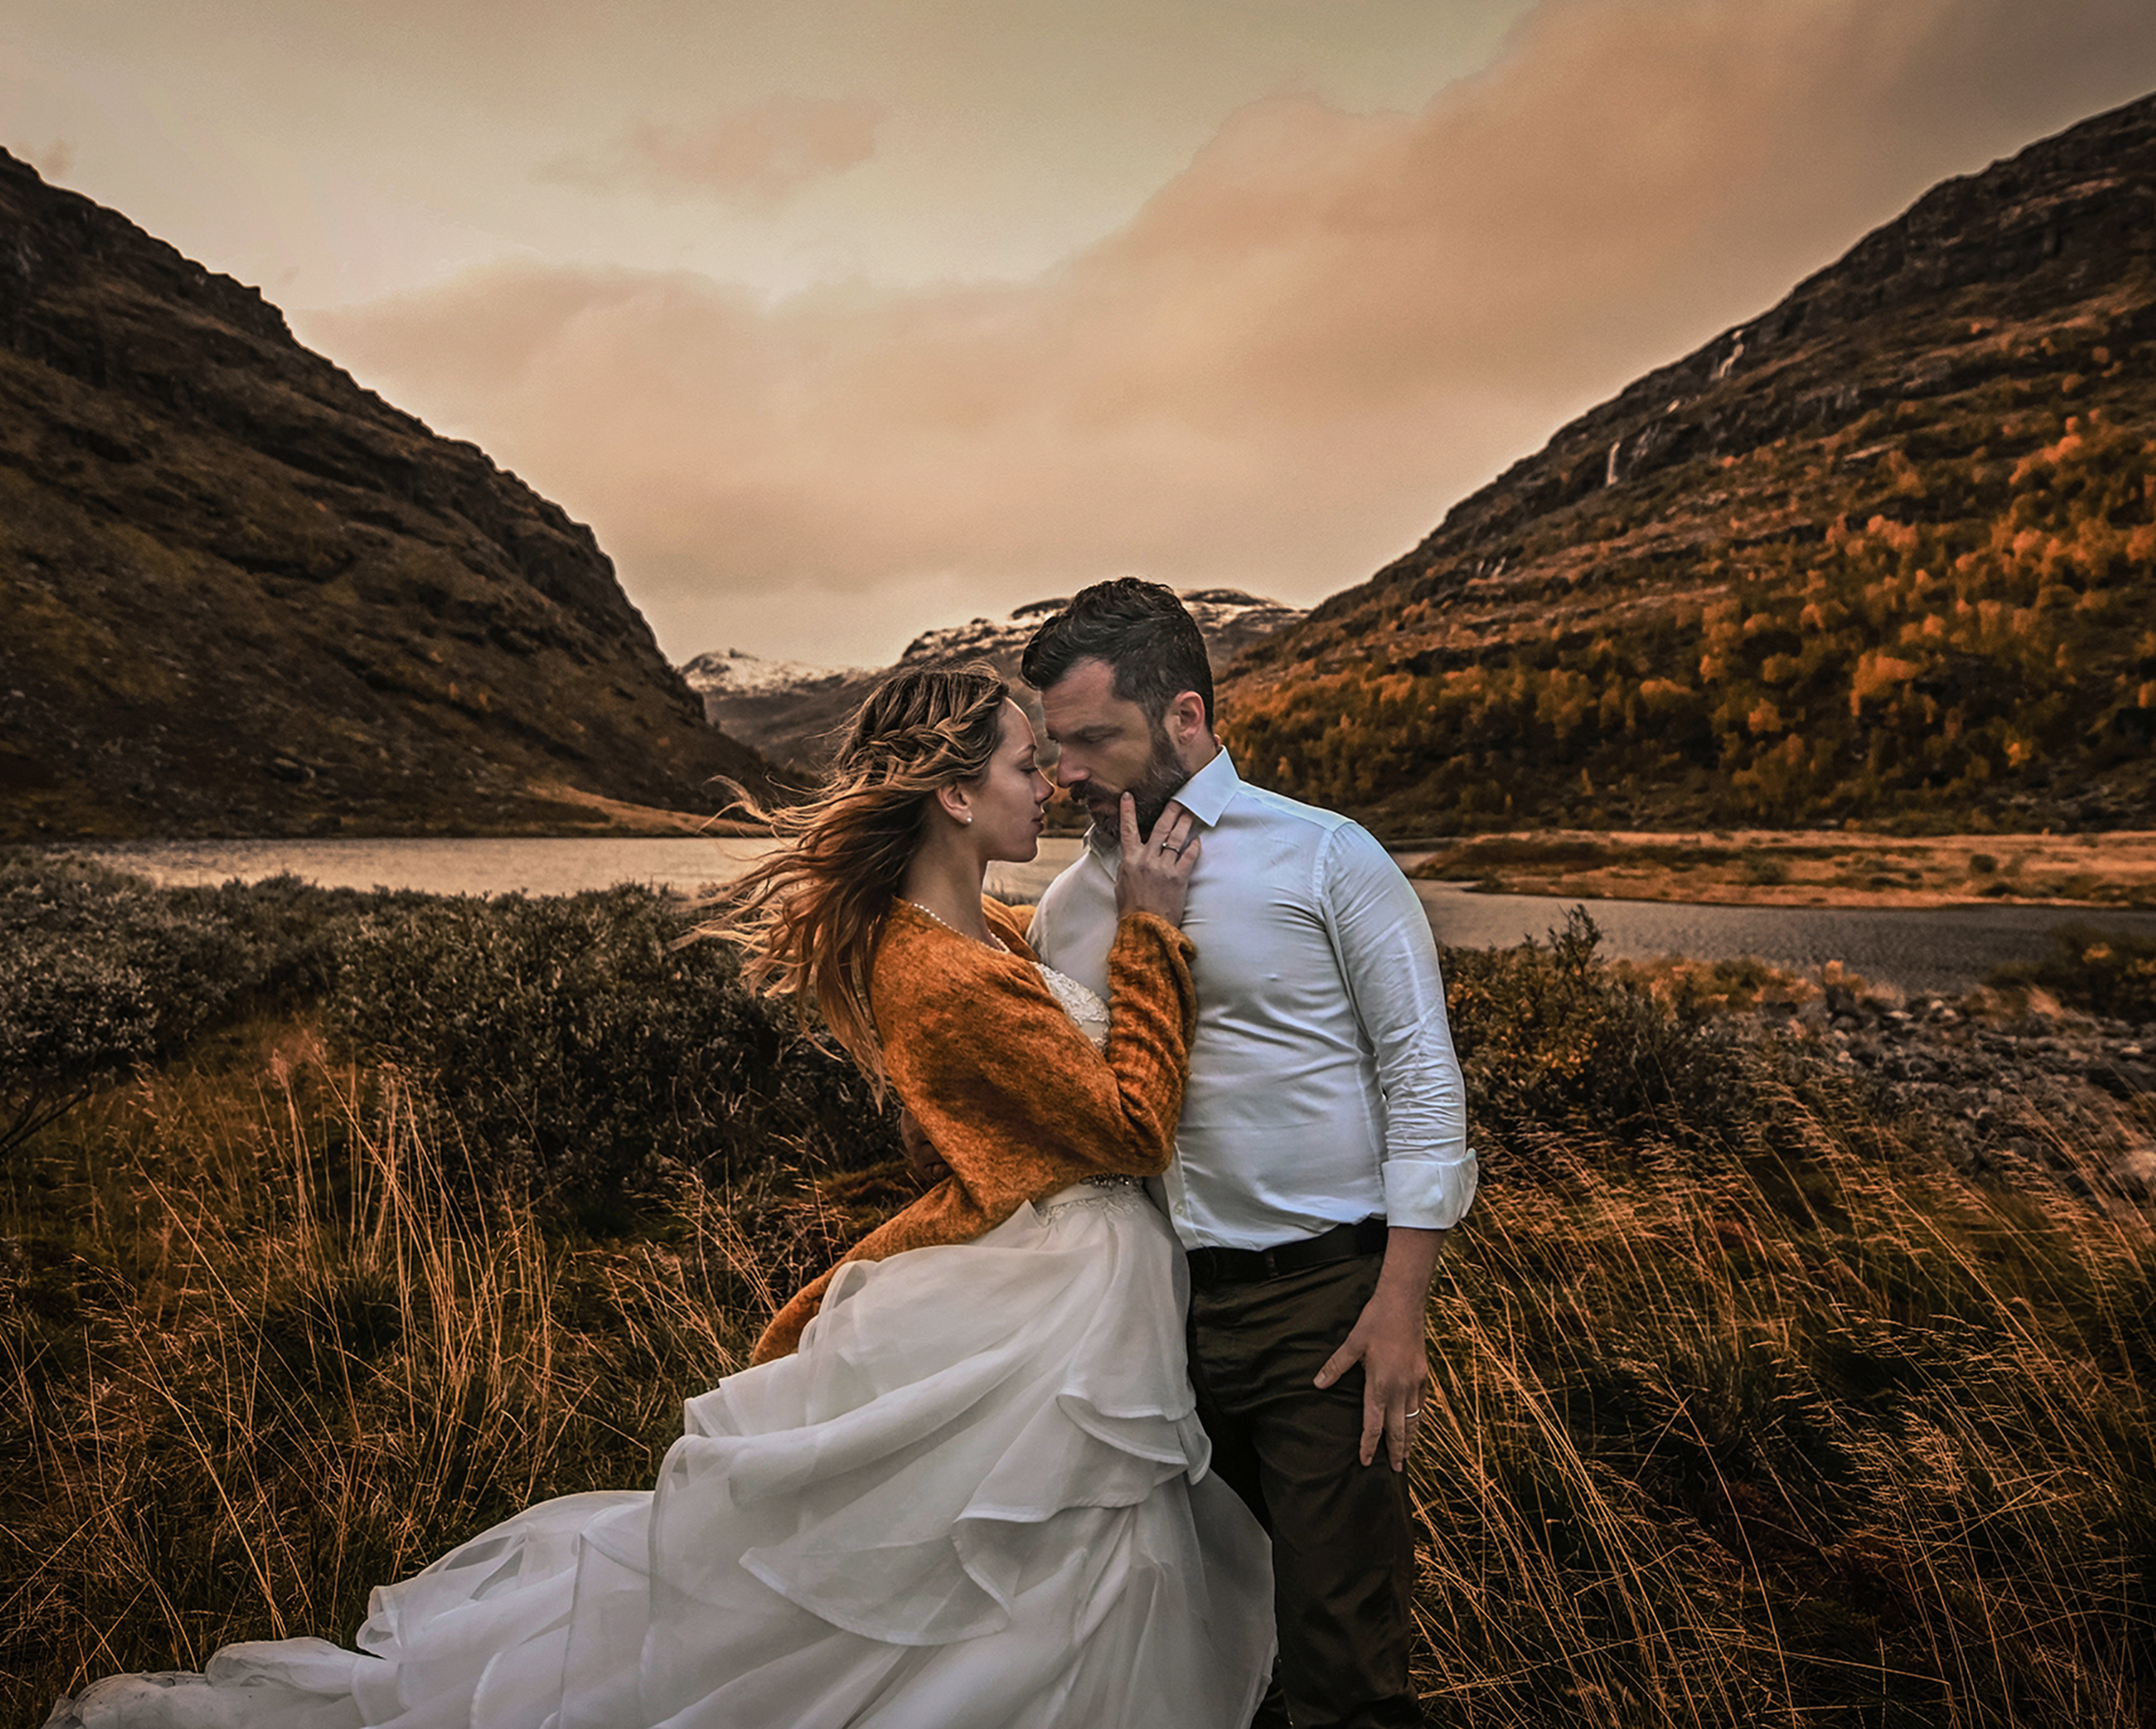 Windswept outdoor kiss against mountain scenery - photo by Frøydis